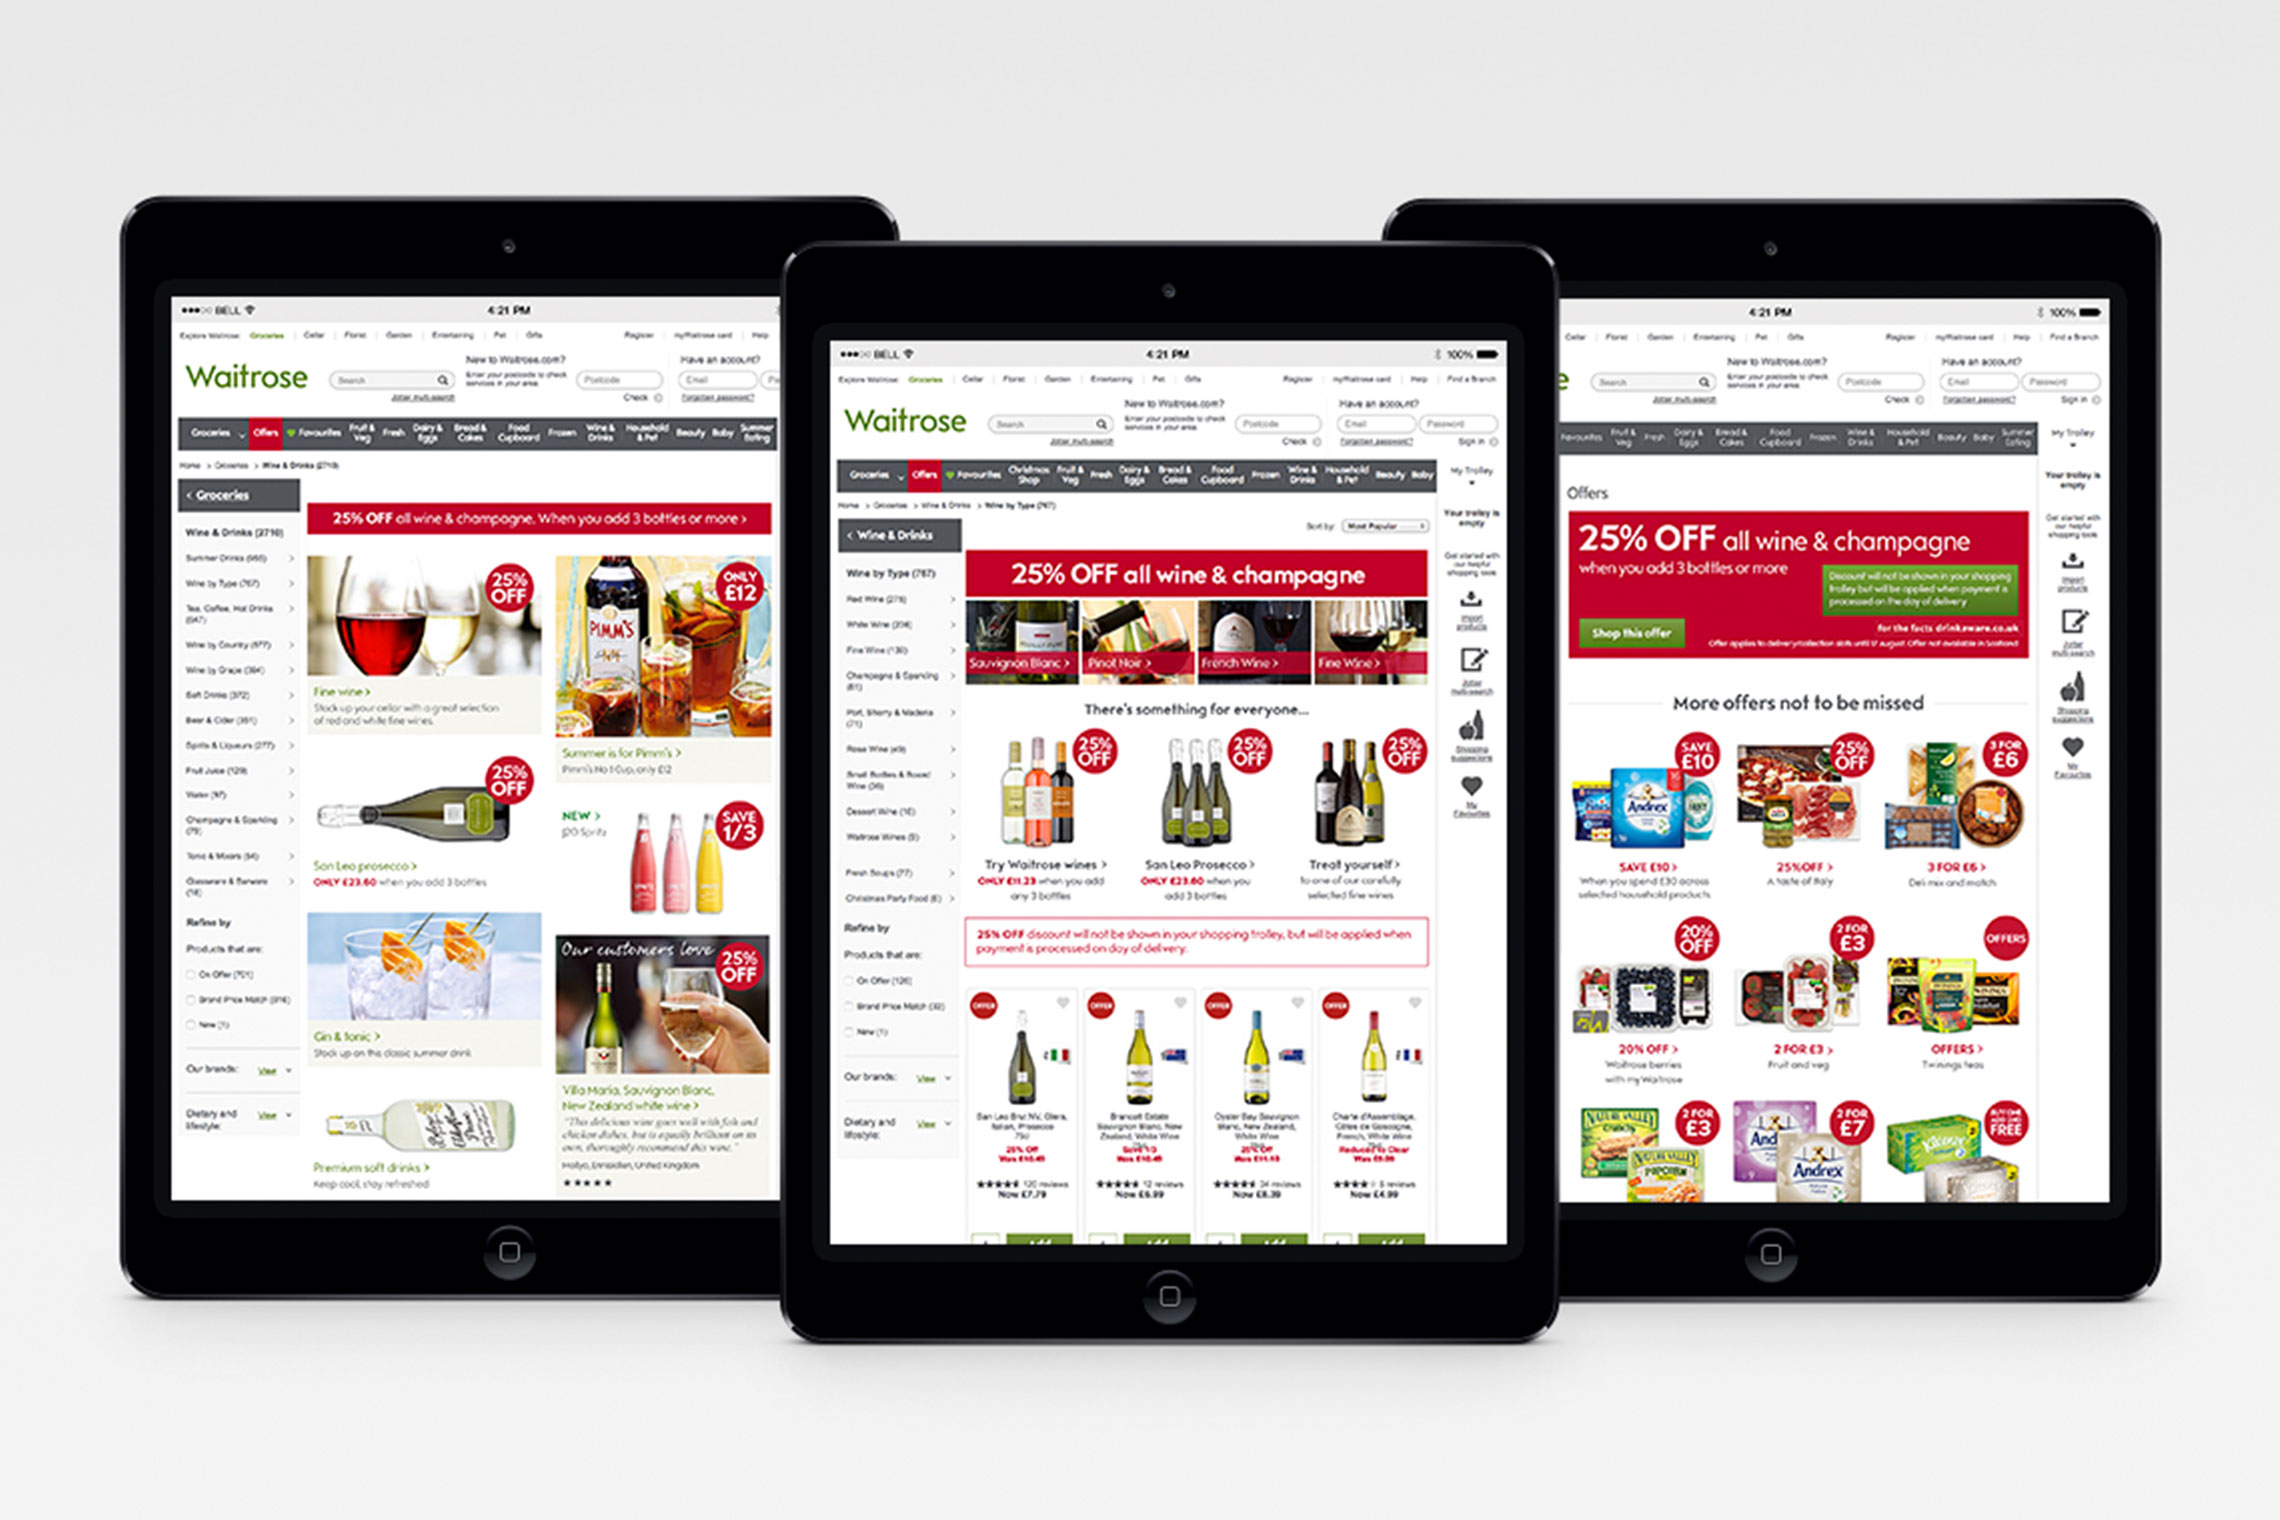 iPad featuring hotspots and banners on waitrose.com designed by Miranda | Made by Miranda | © Miranda Thorne | madebymiranda.co.uk